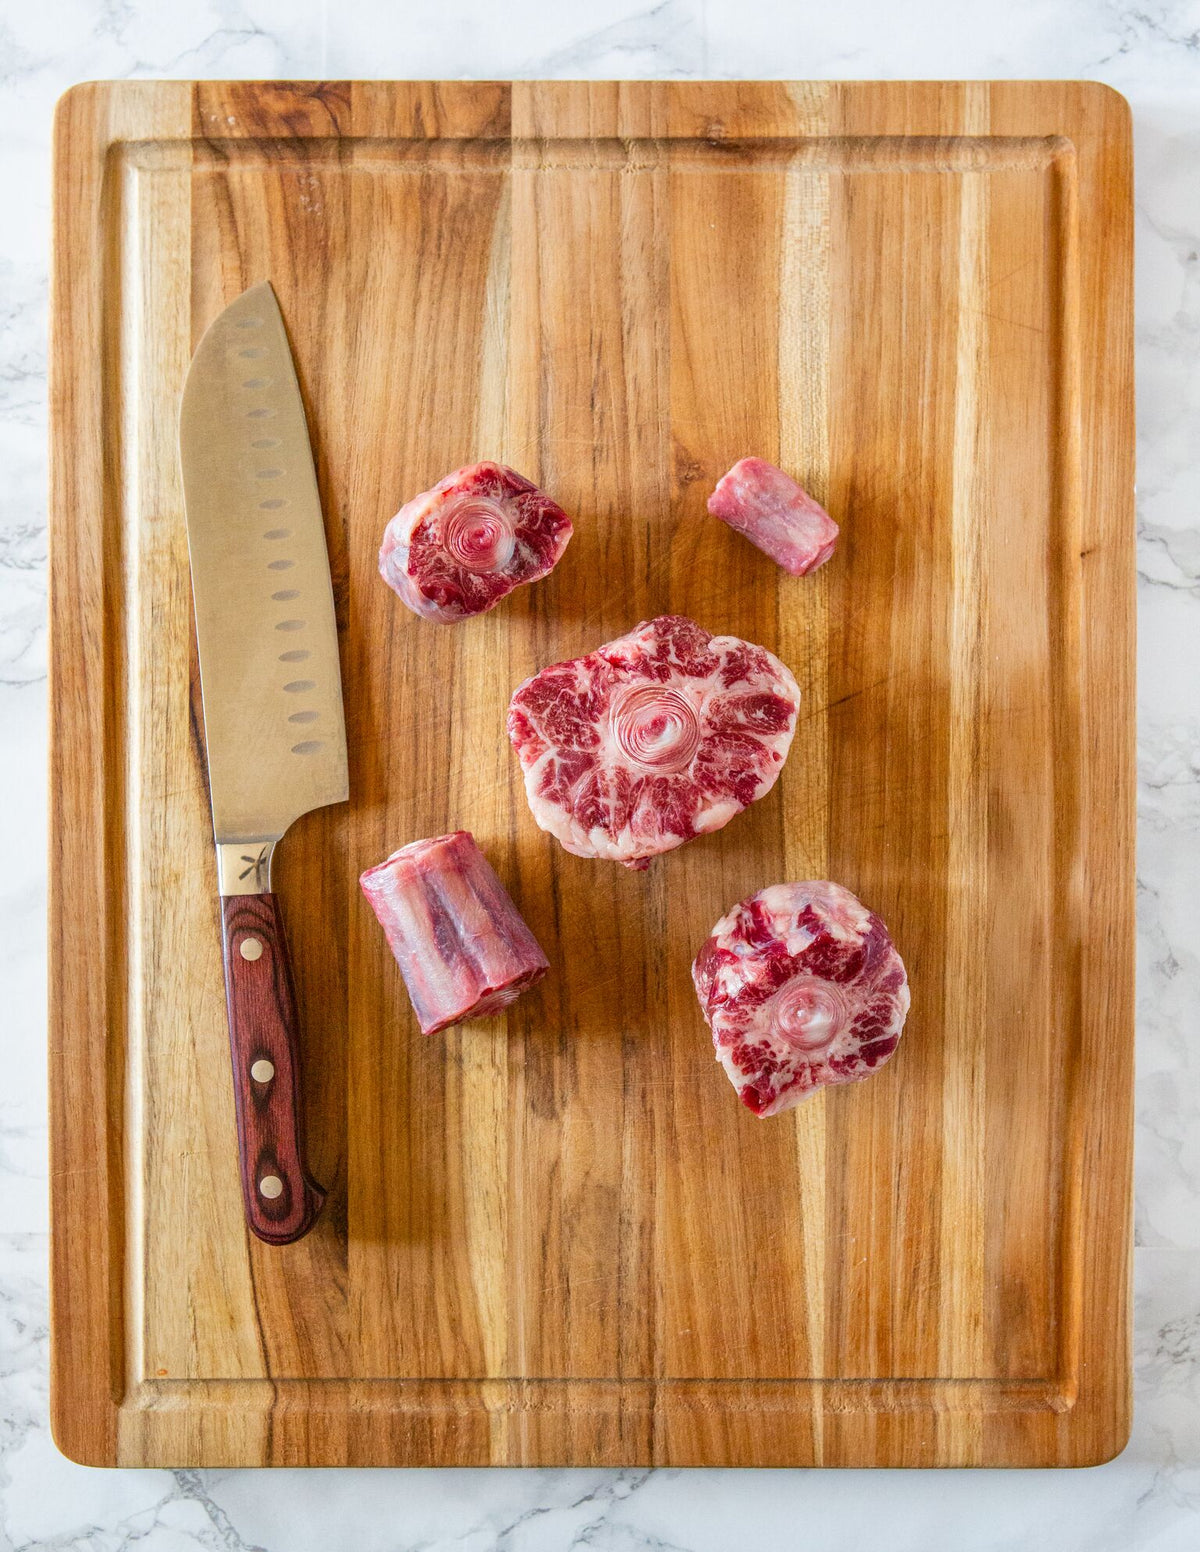 Wagyu Beef Oxtail